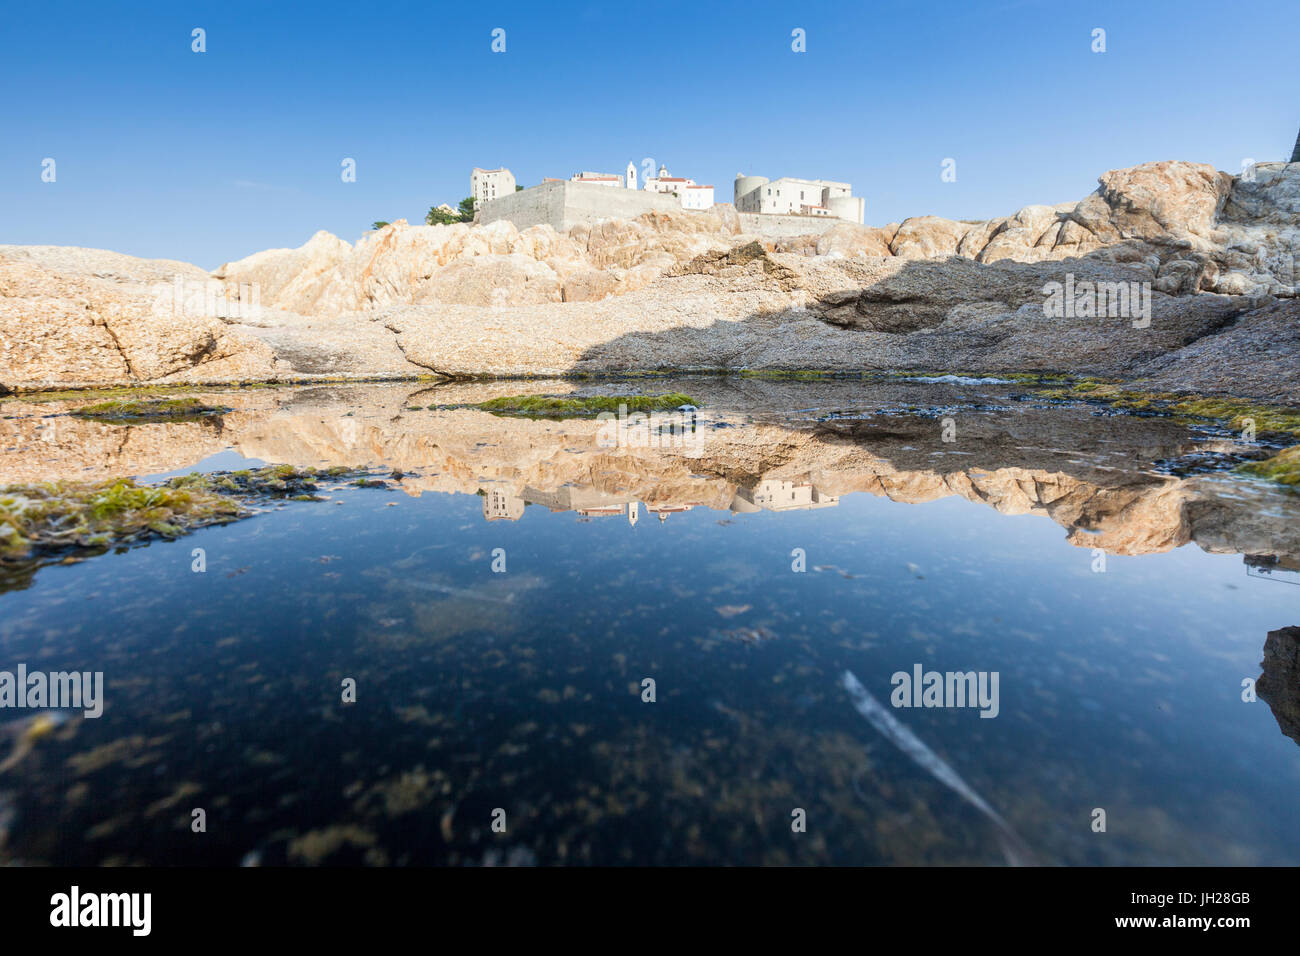 The ancient fortified citadel reflected in the blue sea, Calvi, Balagne Region, Corsica, France, Mediterranean, Europe Stock Photo